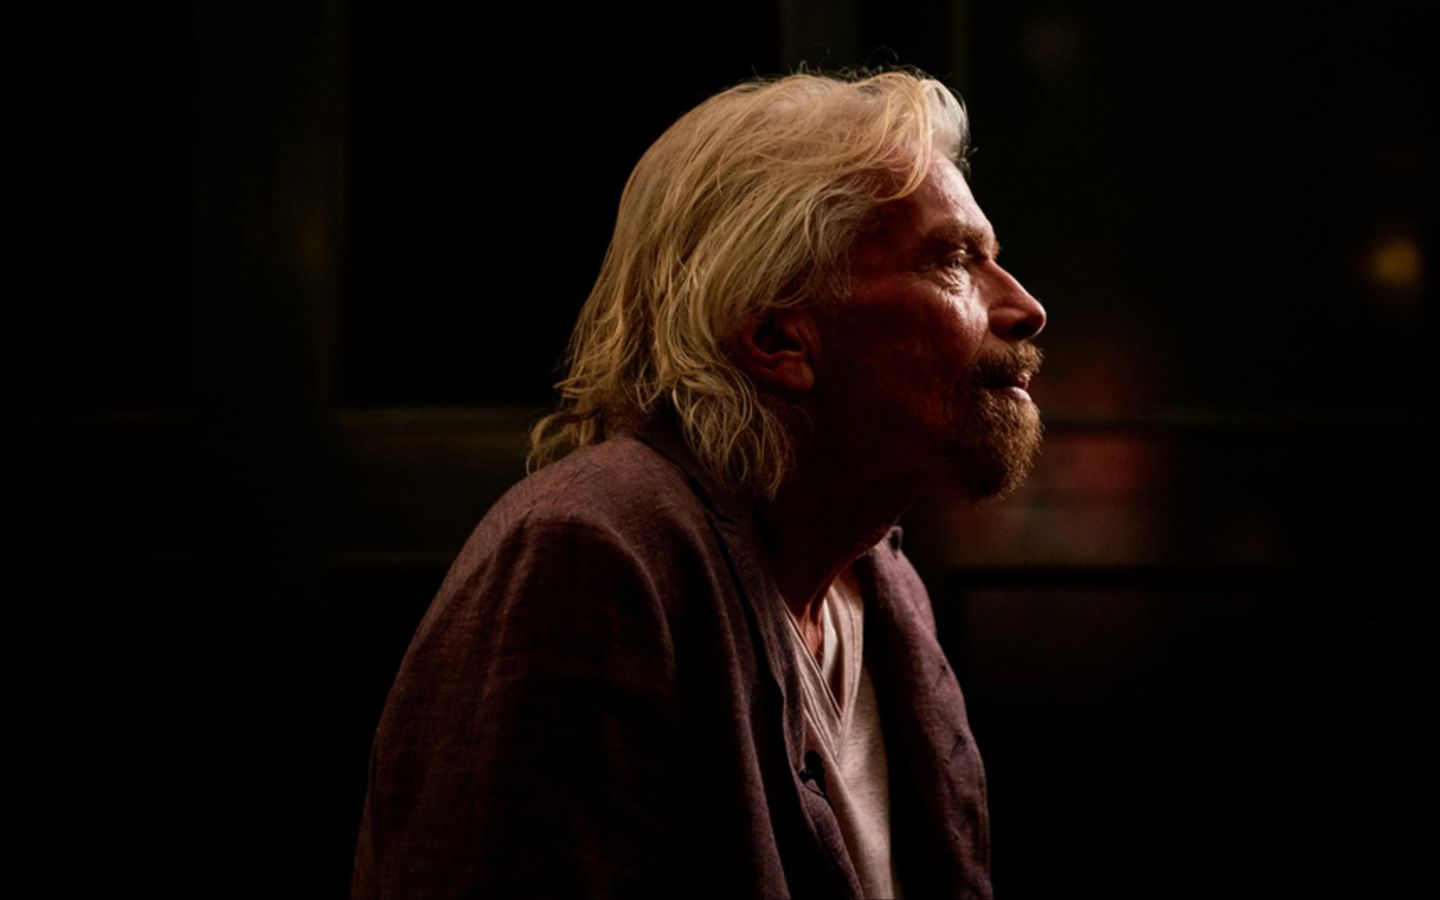 Richard Branson deep in thought